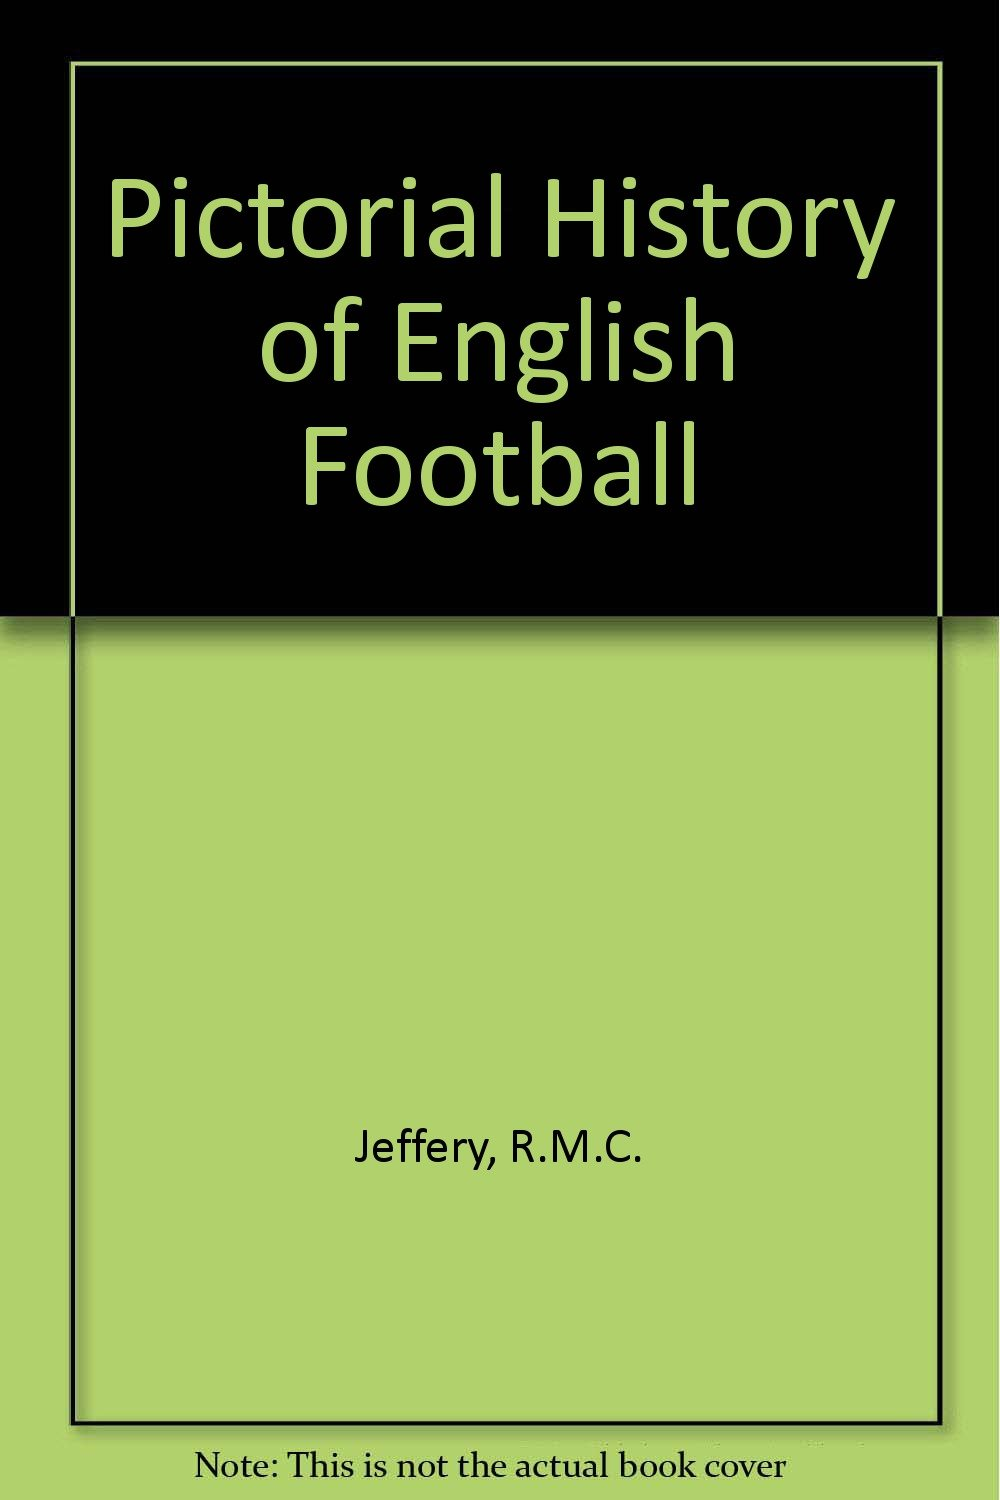 Download Pictorial History of English Football PDF